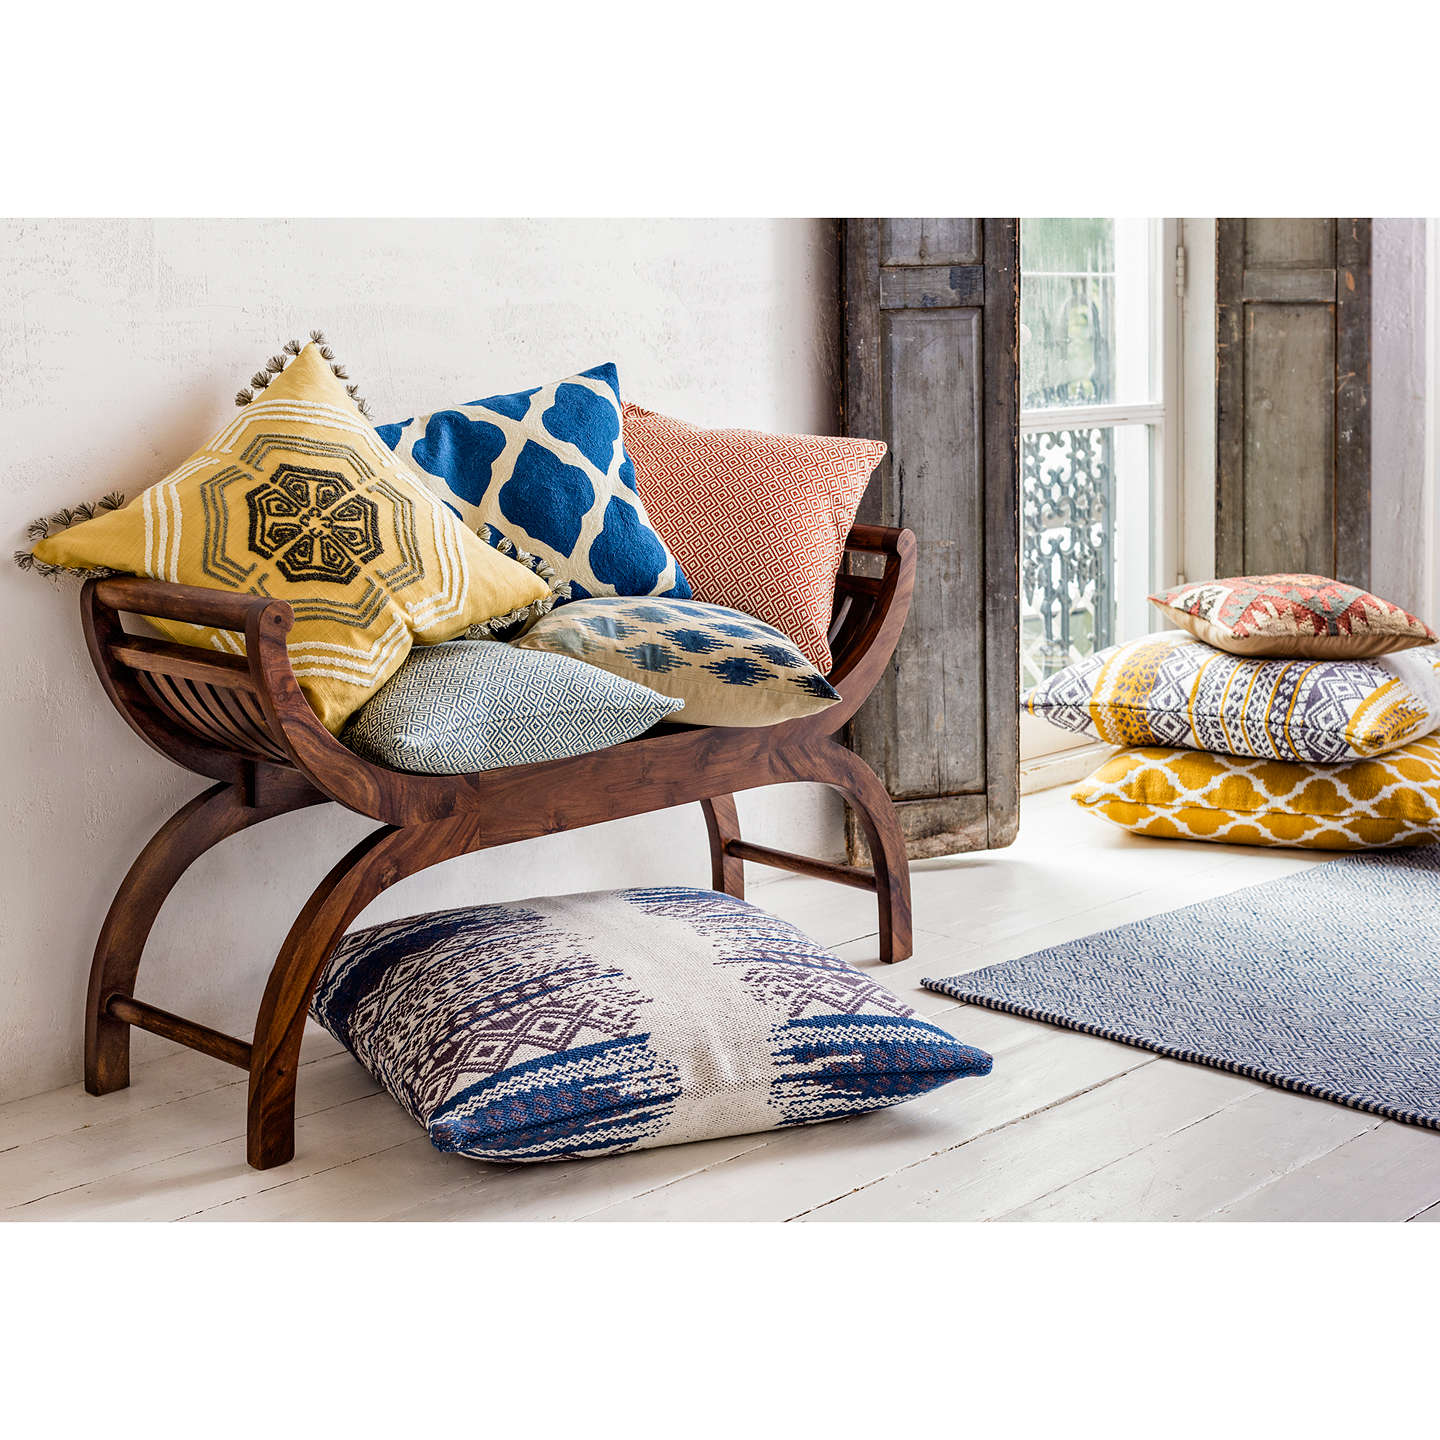 BuyJohn Lewis Ikat Ombre Cushion, Indian Blue Online at johnlewis.com